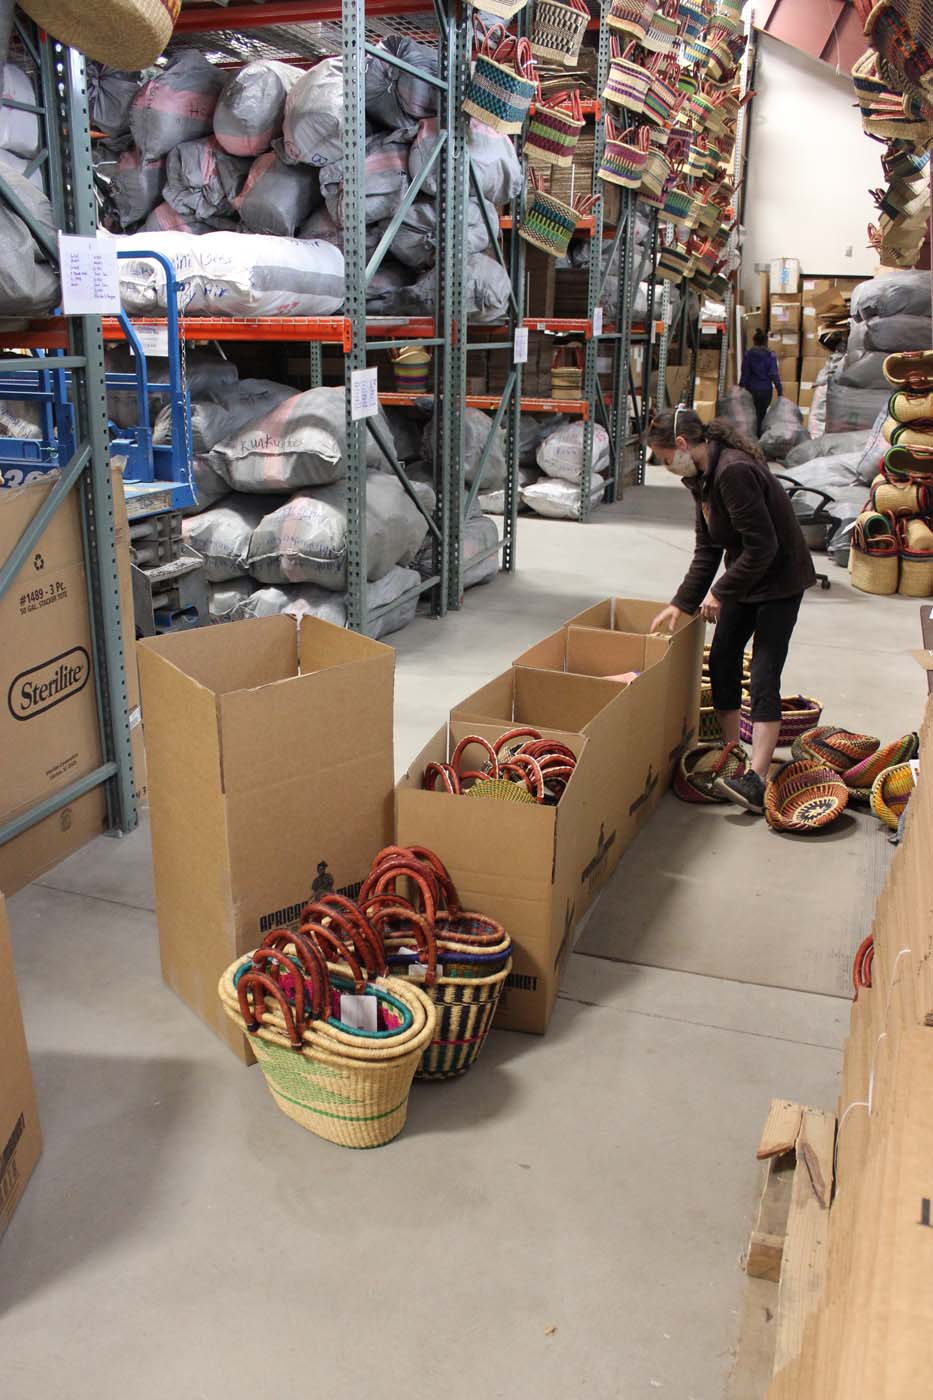 Choosing baskets for orders and packing them up